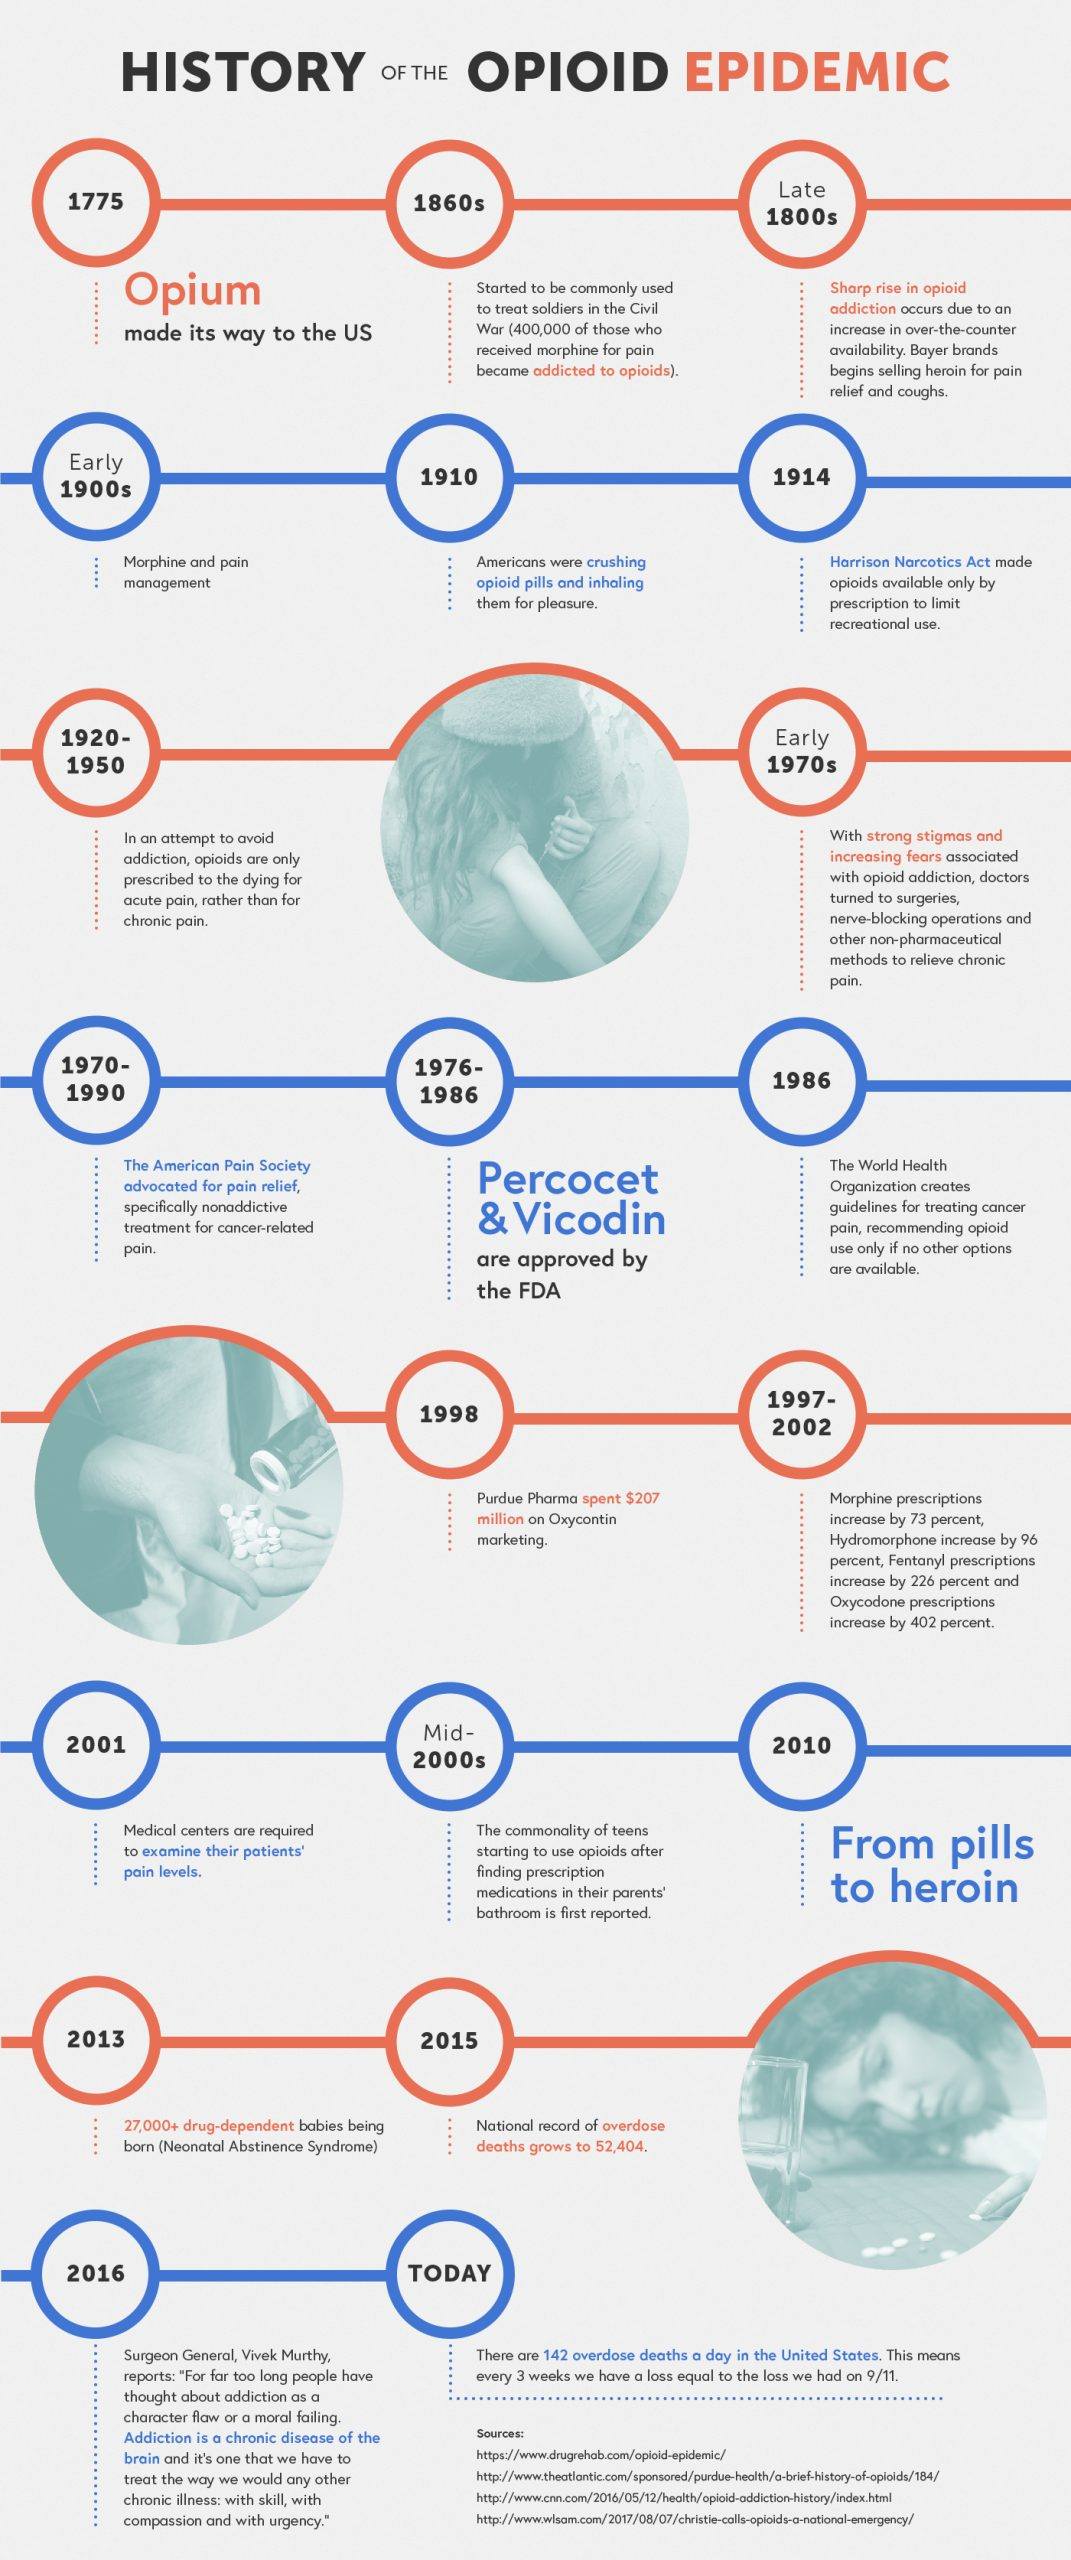 infograph of the history of the opioid epidemic started in 1775 with opium making its way to the united state. there was then a sharp rise in opioid addiction in the late 1800s that lead people to crushing opioids and inhaling them for pleasure. in 1914, the harrison narcotics act limited recreational use of drugs. most importantly, in 1986, the world health organization created guidelines for treating cancer pain by recommending opioid use only if no other options were available. today, america's overdose deaths have grown from 52,404, with drug dependent babies also being born. Surgeon general, vivek murthy, reports that addiction is a chronic disease in 2016, and not a moral failing. In 2017, we are continuing to break the stigma with this being a national epidemic.